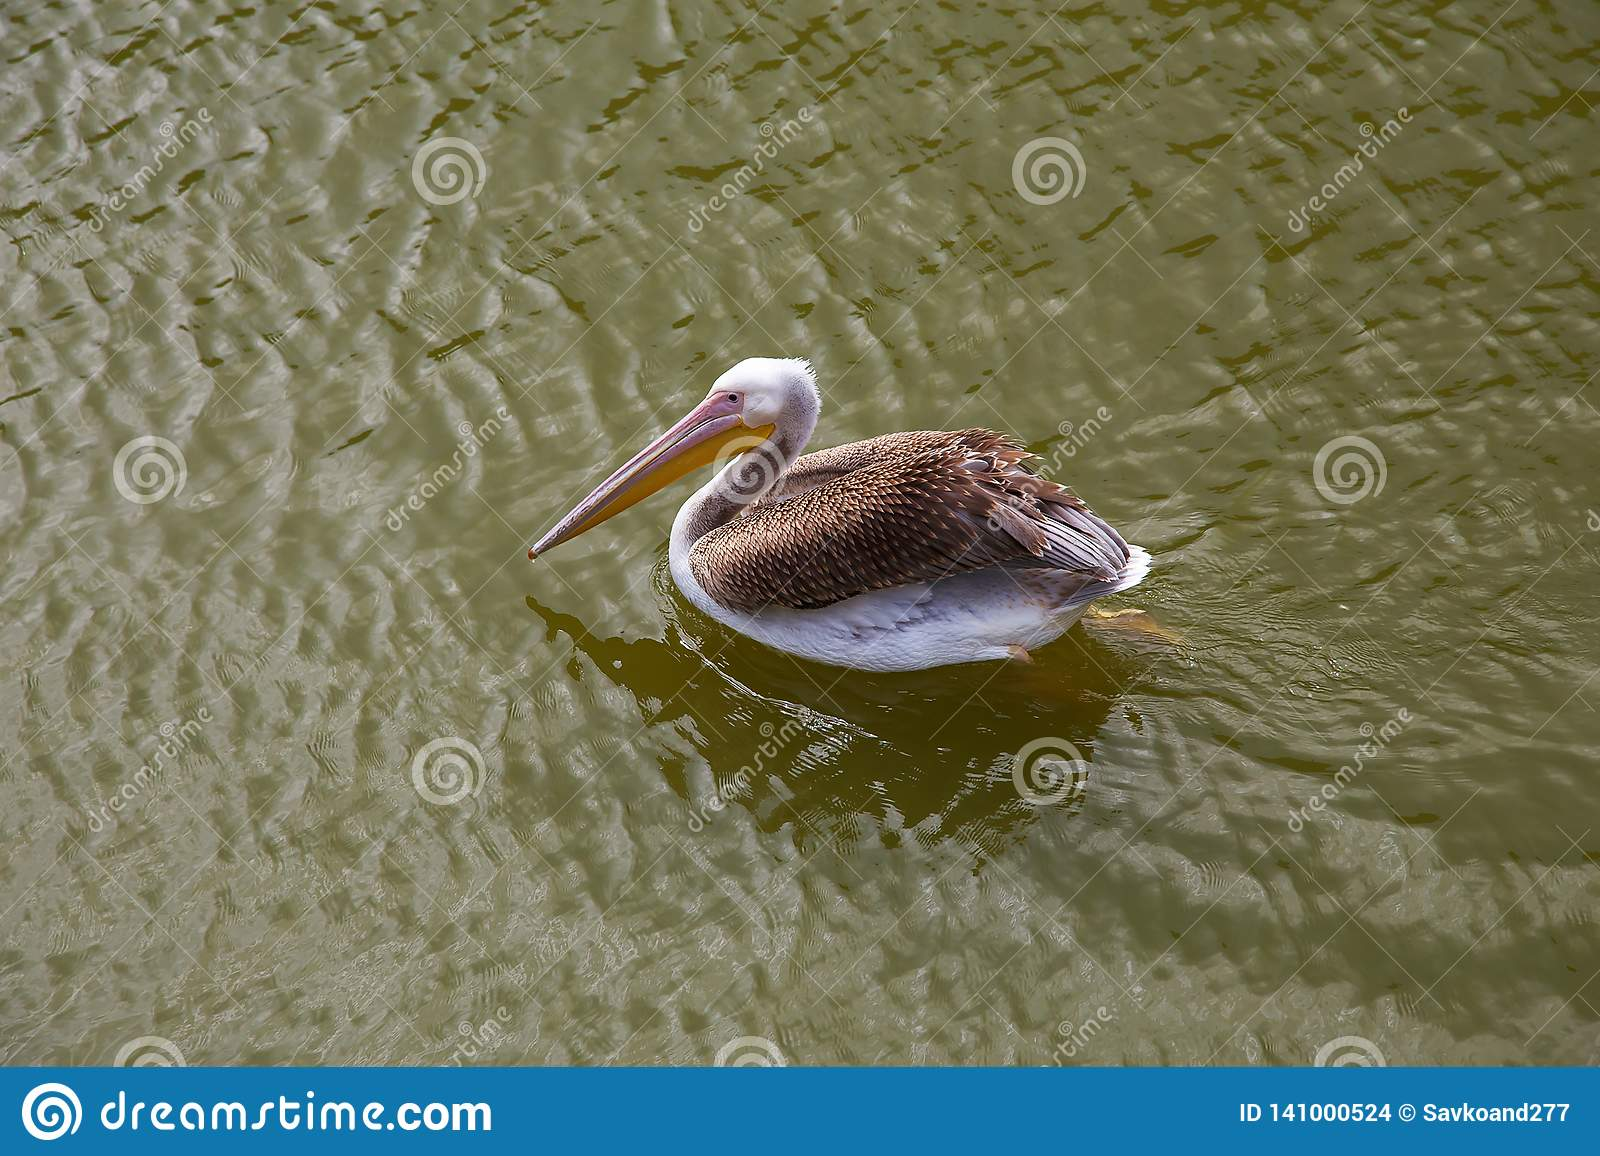 Pelicans swims and catches fish